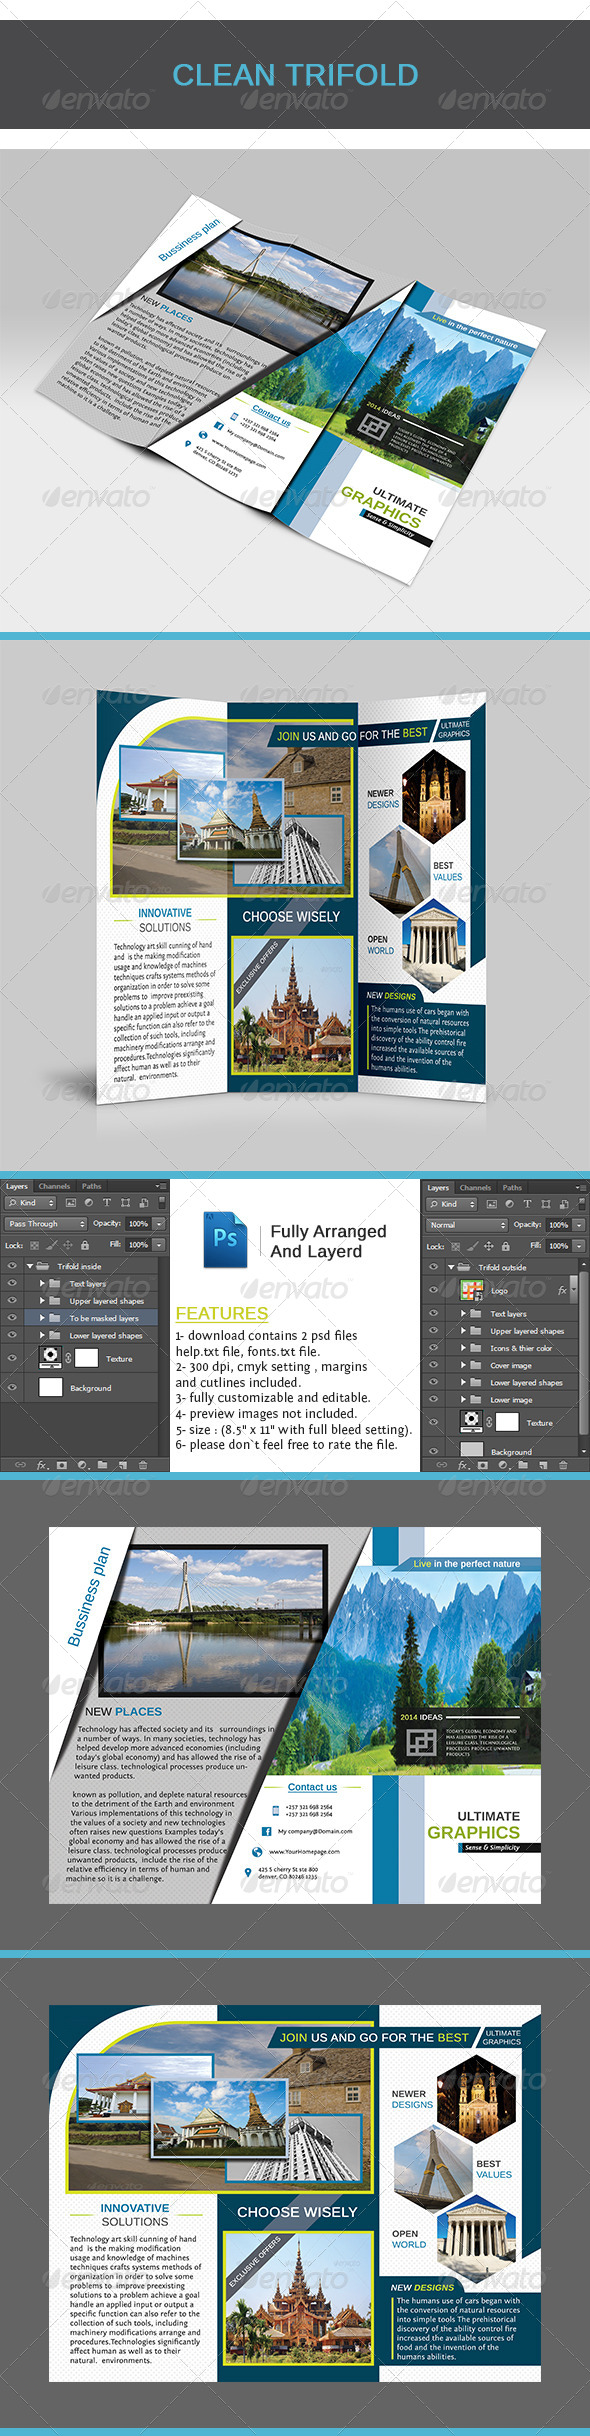 GraphicRiver Clean Trifold 5323605